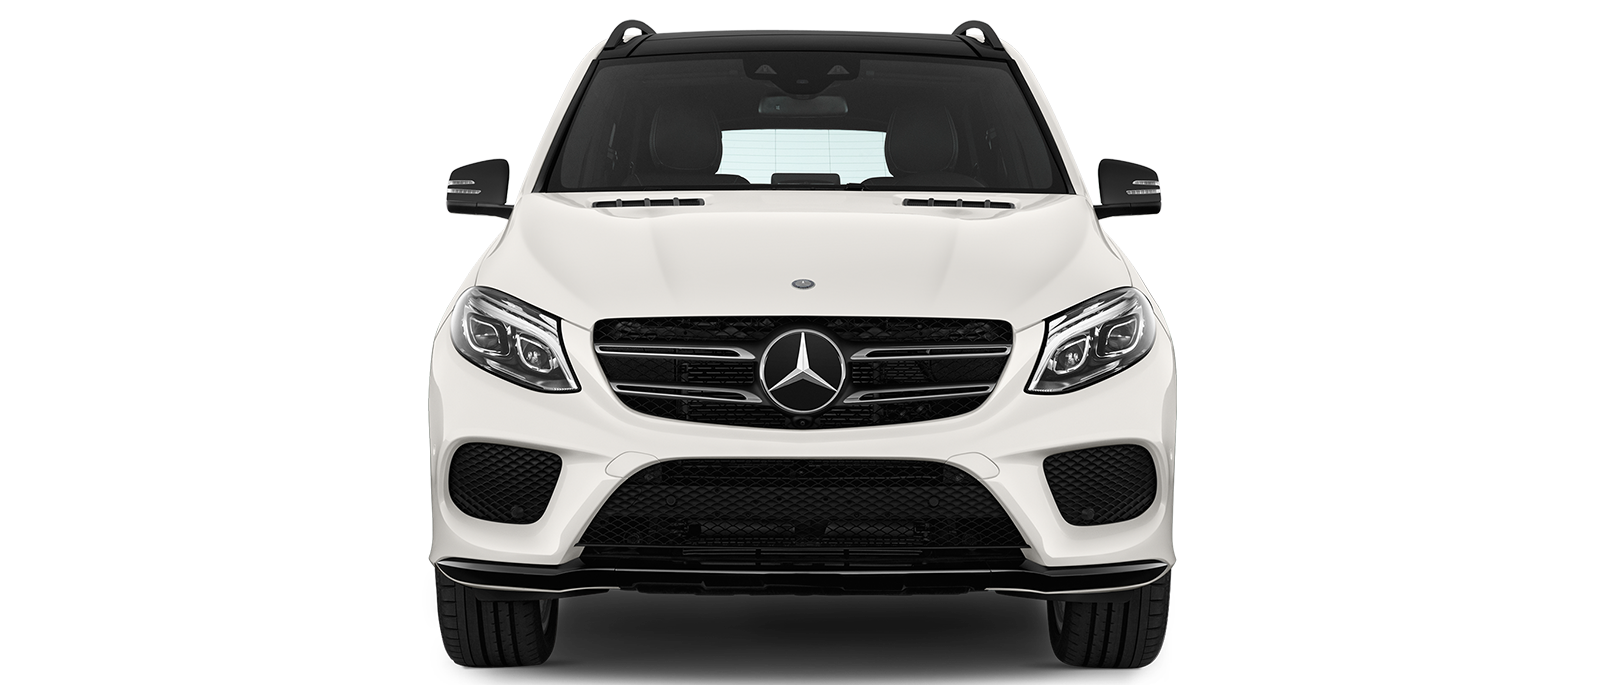 mercedes benz gle350 car rental exotic car collection by. Black Bedroom Furniture Sets. Home Design Ideas